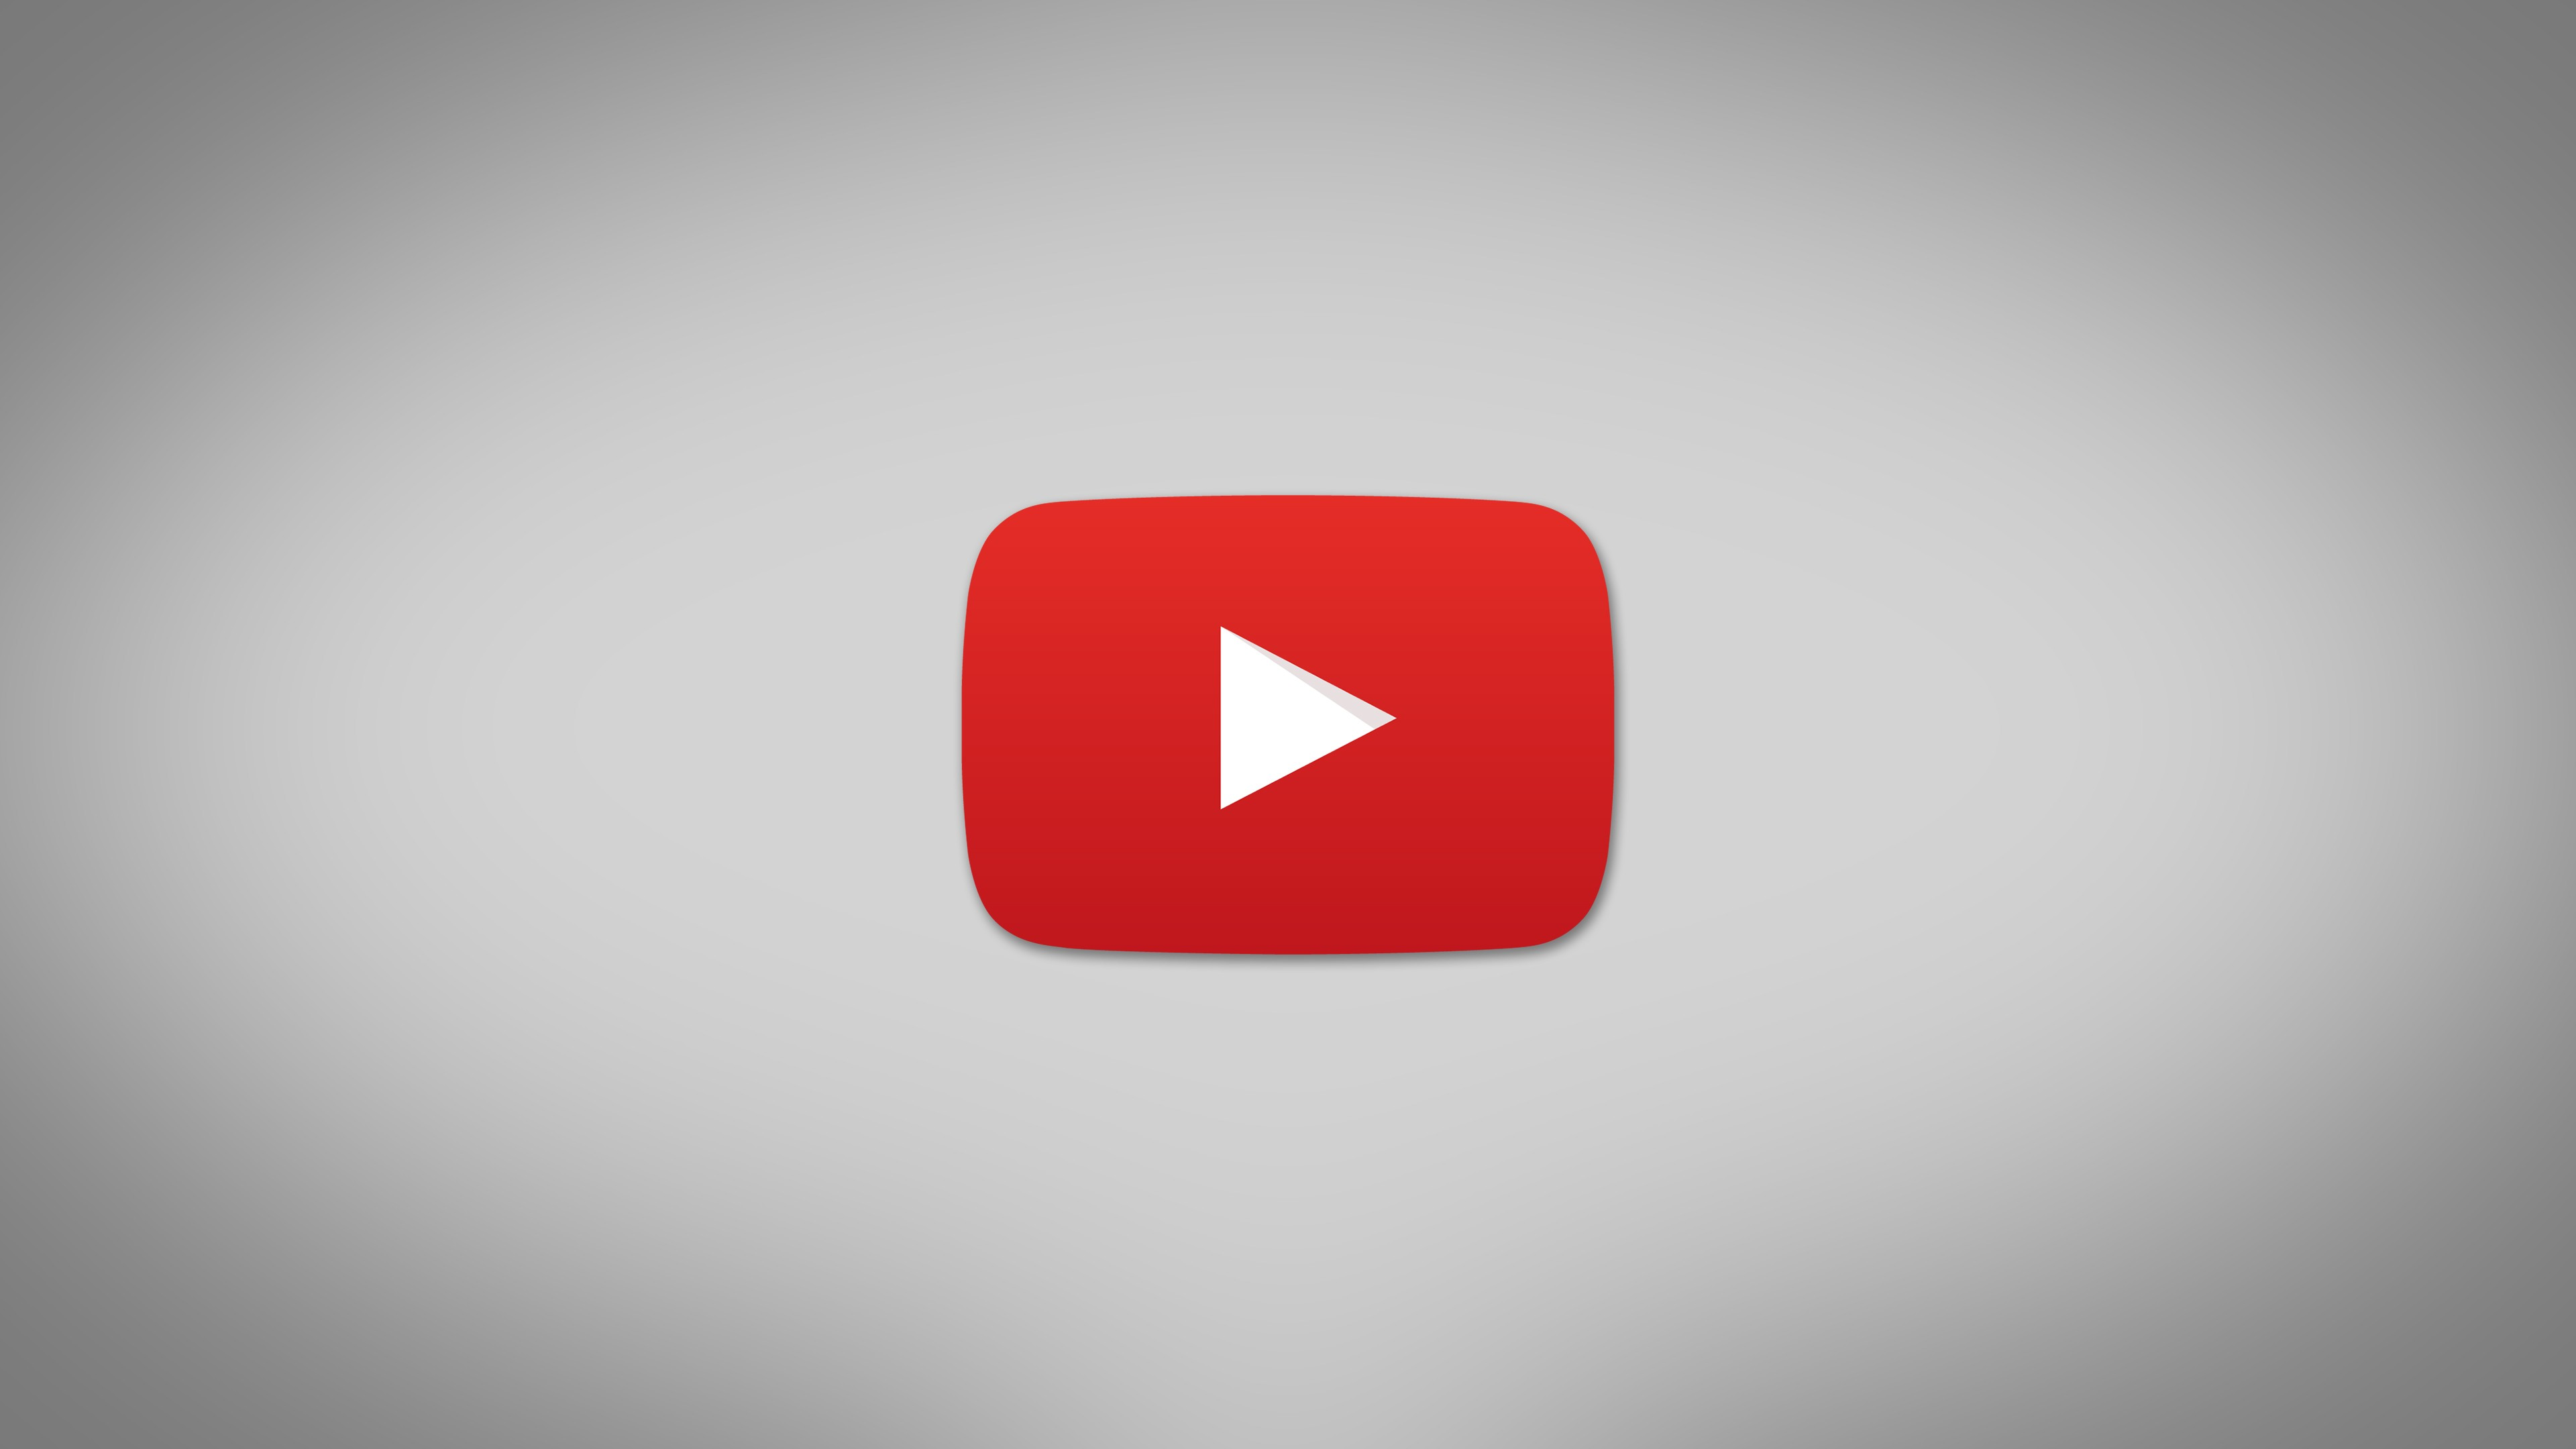 Youtube Original Logo In 4k, HD Logo, 4k Wallpapers, Images.